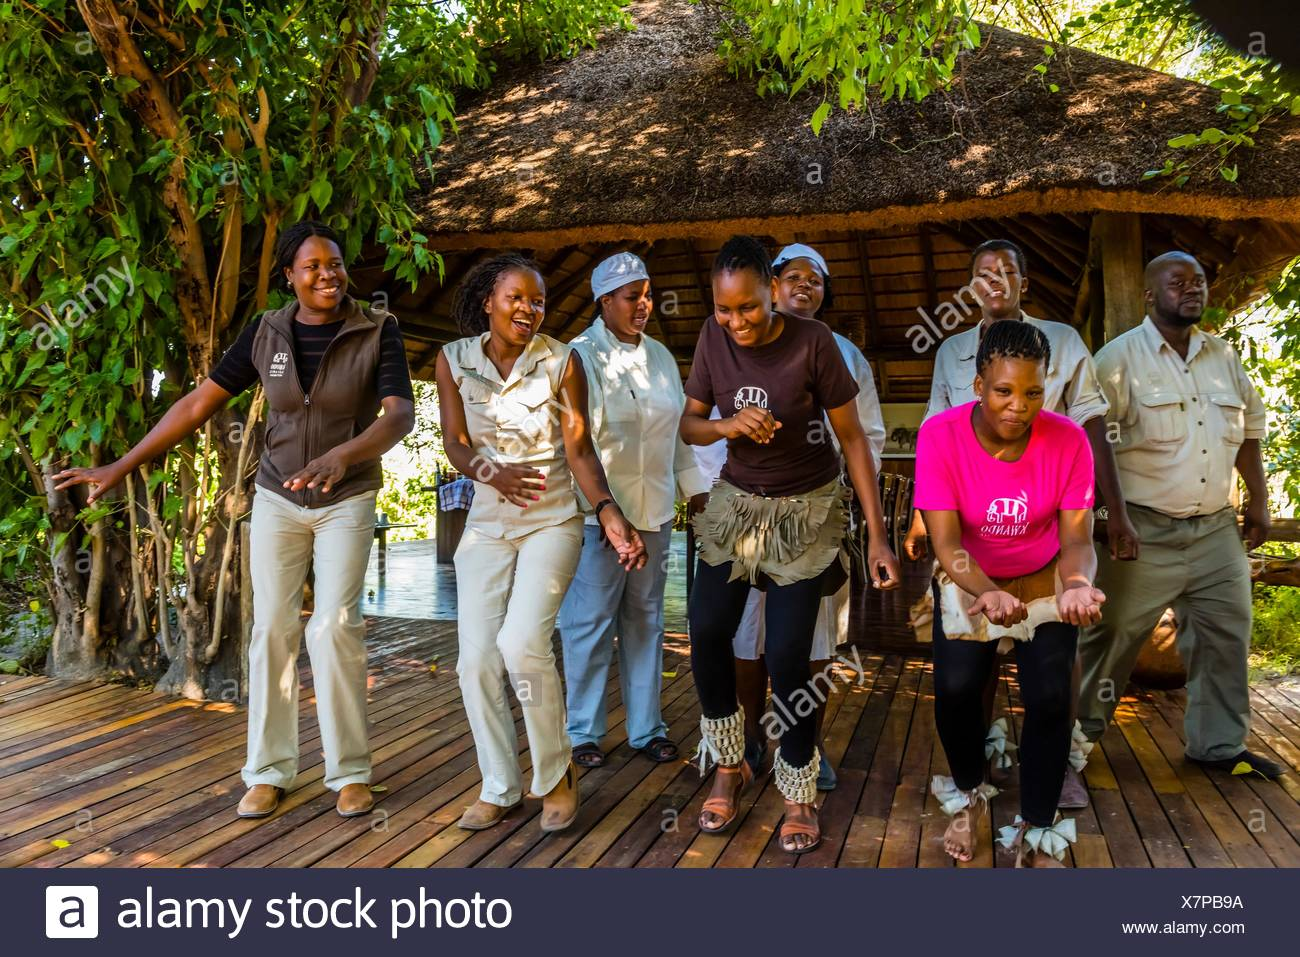 Staff members of the Lebala Safari Camp at the Kwando Concession do a traditional singing and dancing performance, Botswana. Stock Photo